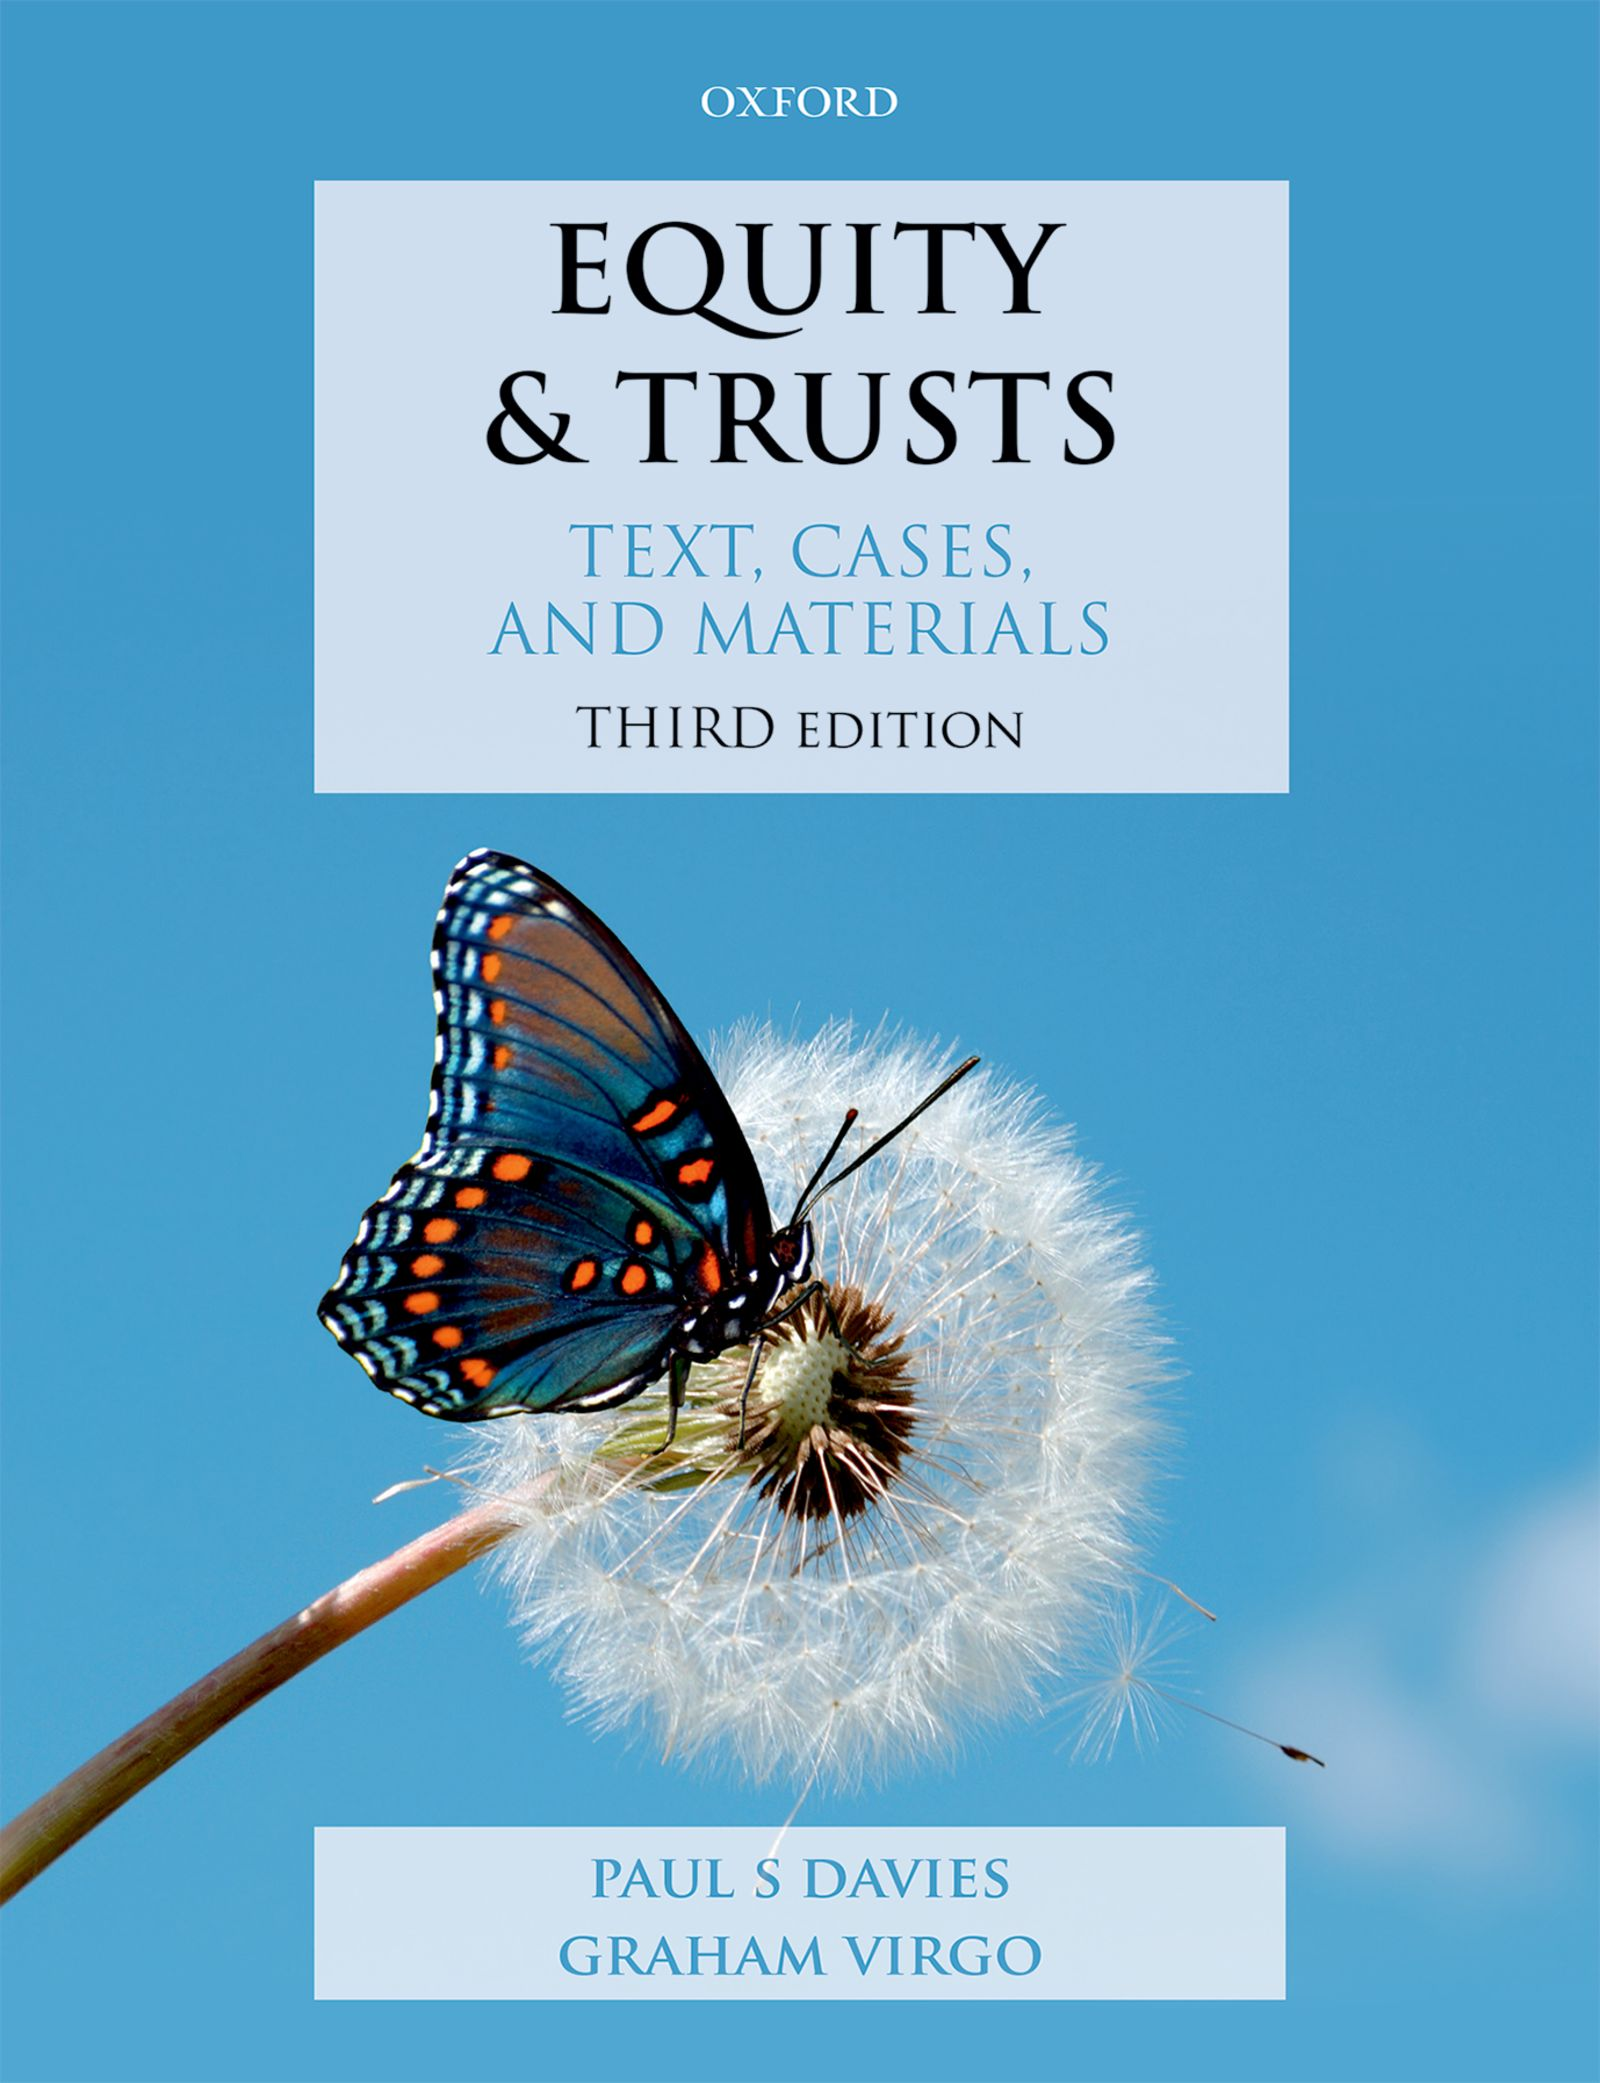 Equity & Trusts: Text, Cases, and Materials 3e Resources